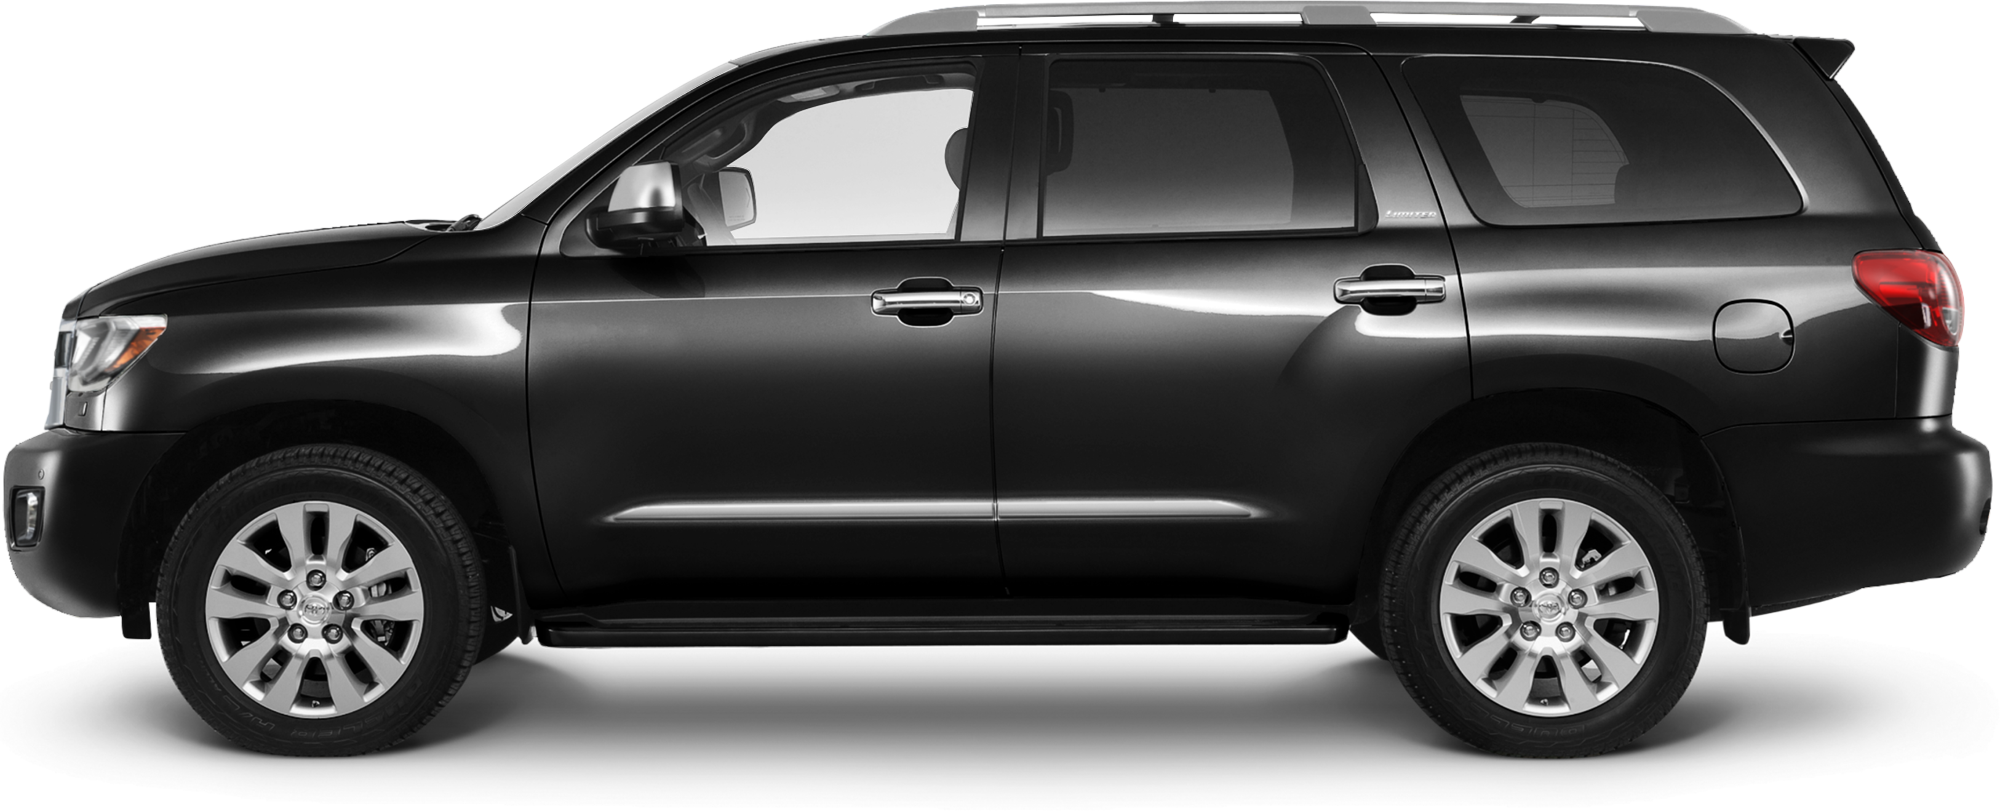 2022 Toyota Sequoia SUV Limited